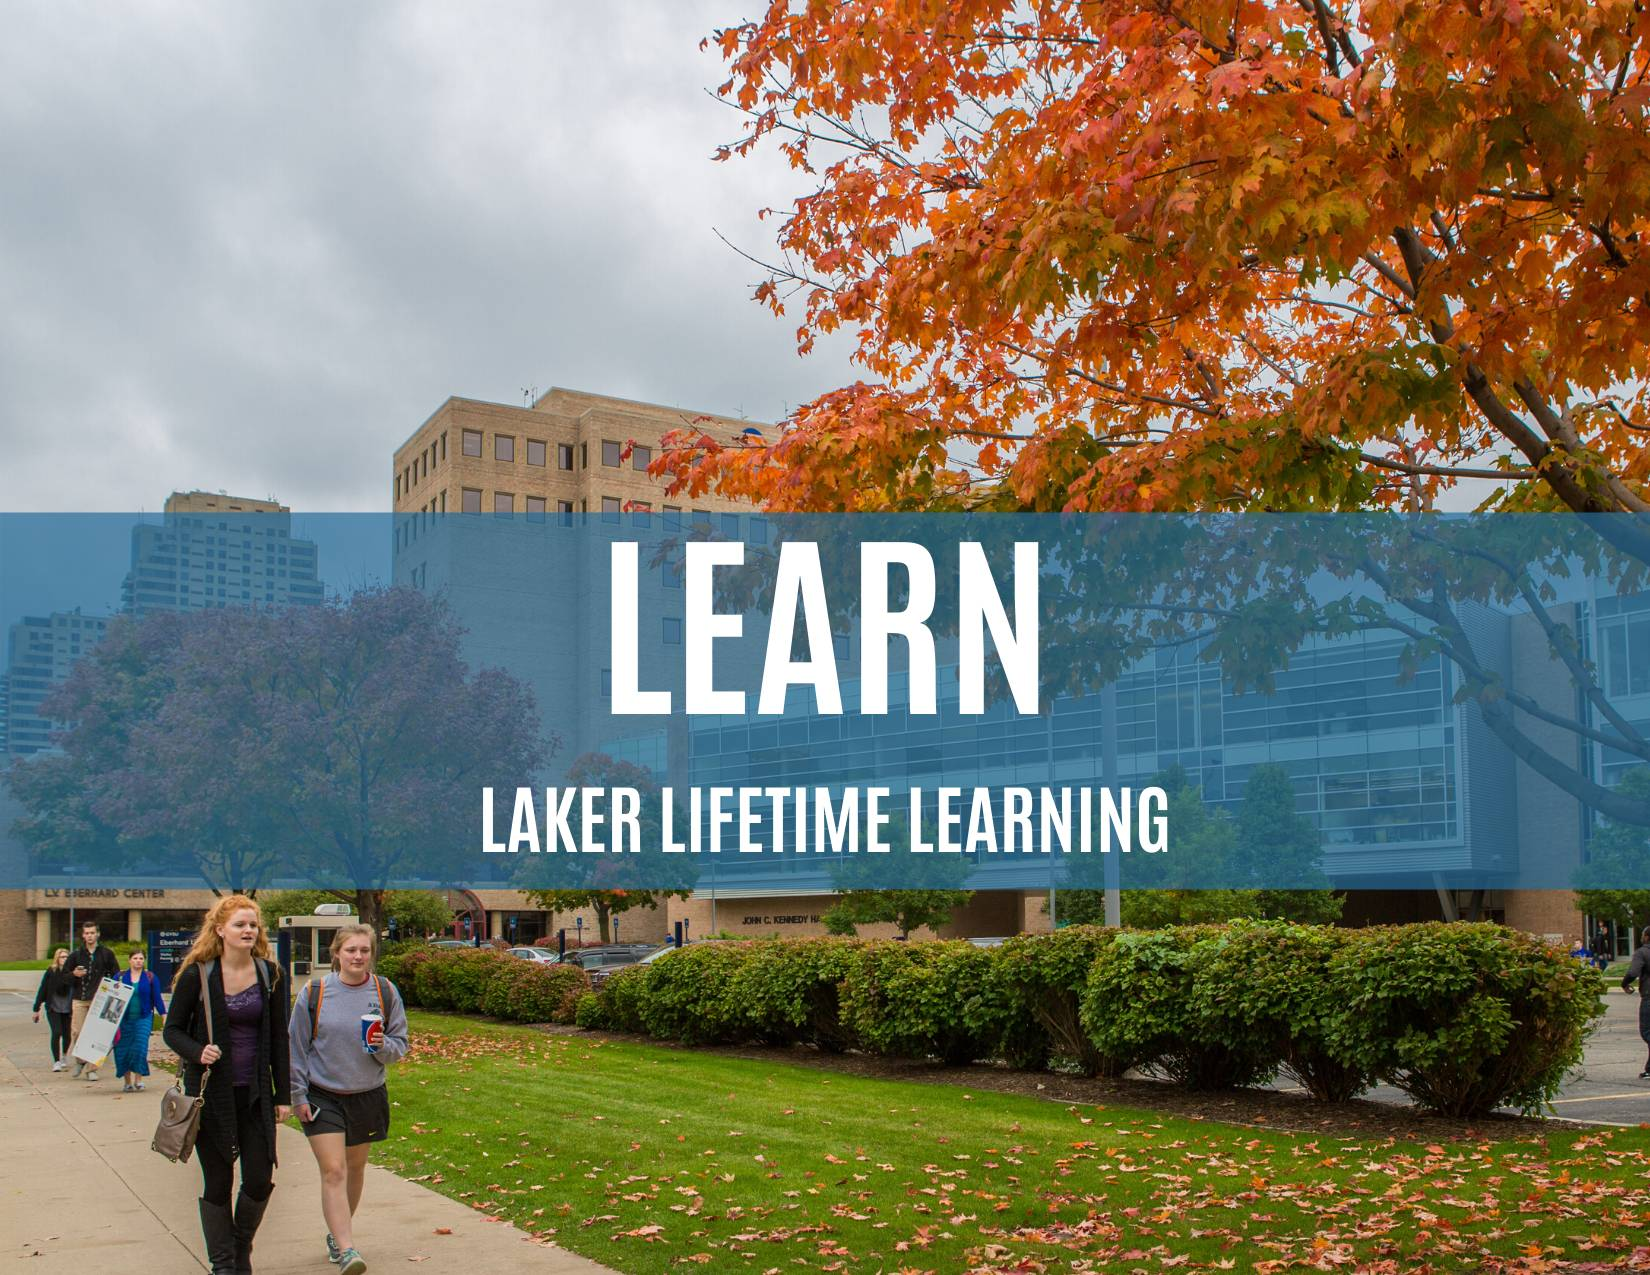 Learn with Laker Lifetime Learning